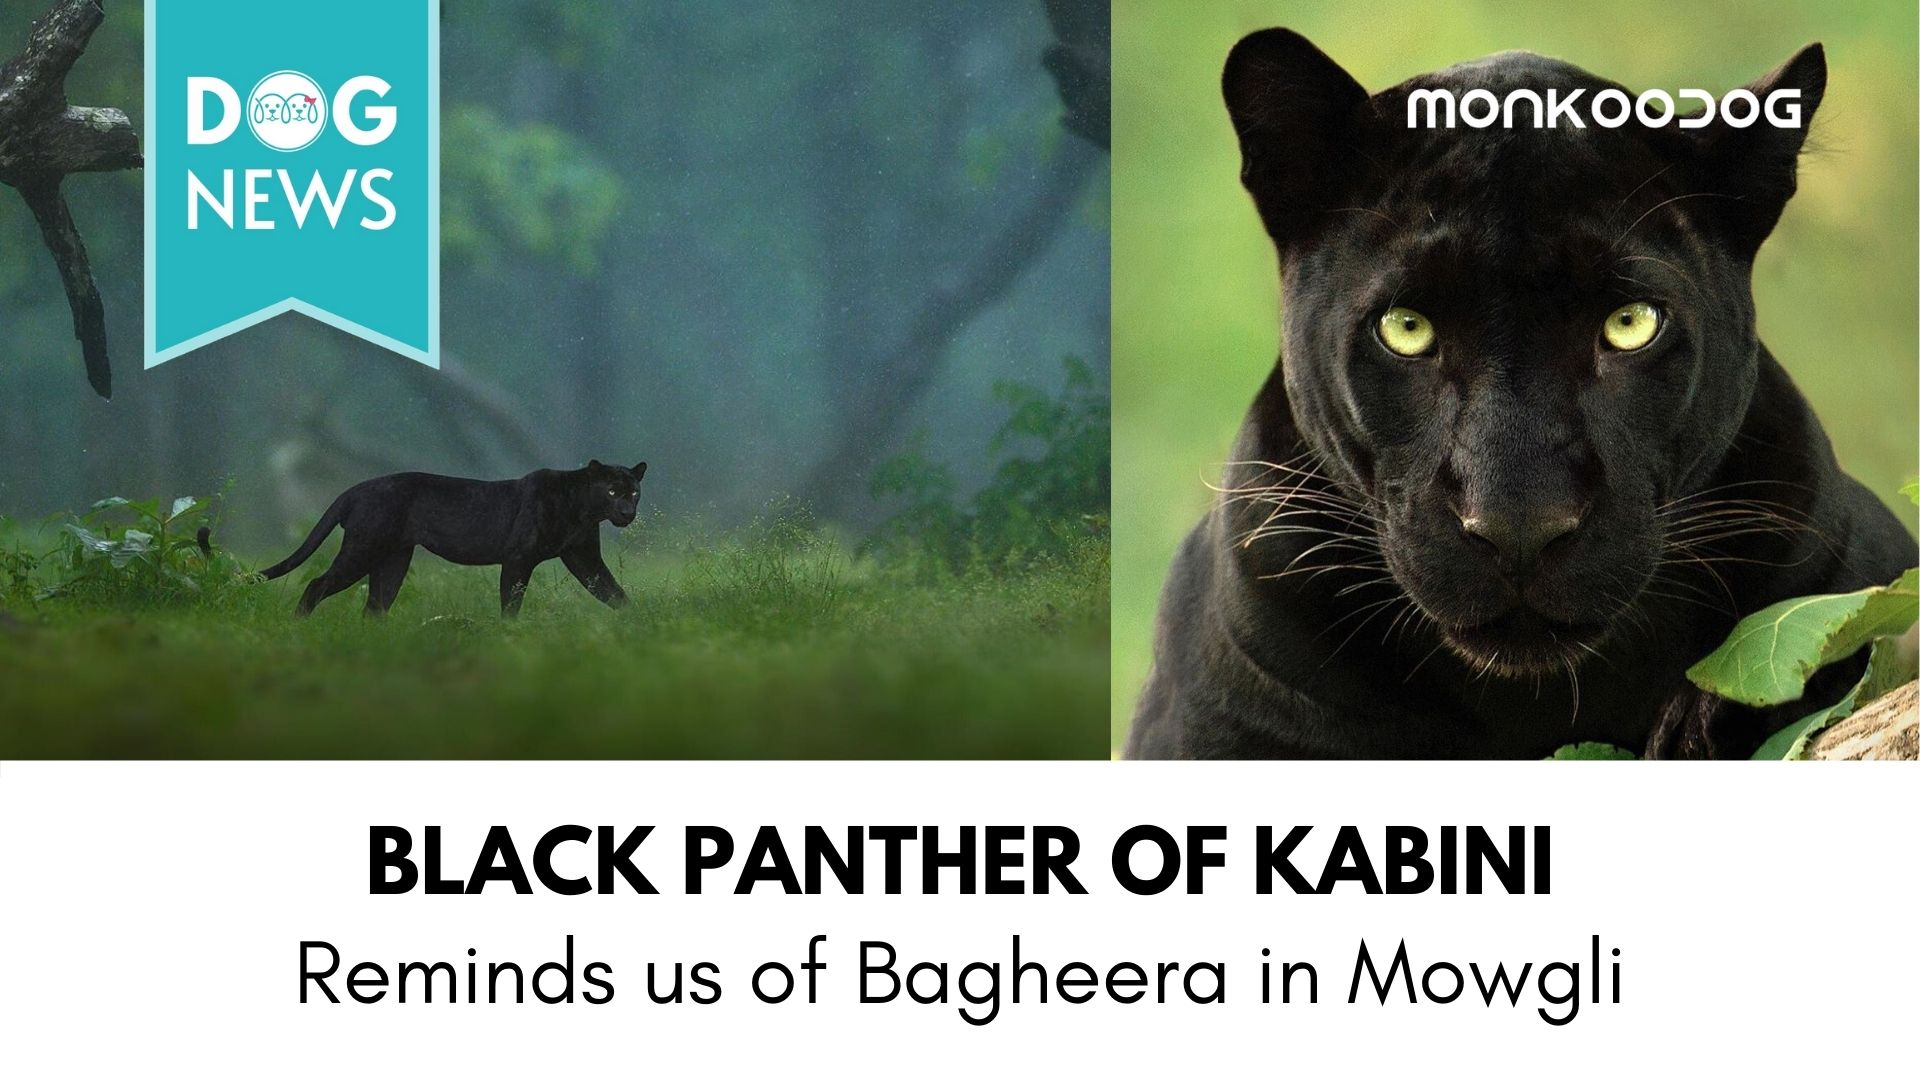 Black Panther spotted in Karnataka's Dense Kabini Forest. Pictures going Viral.